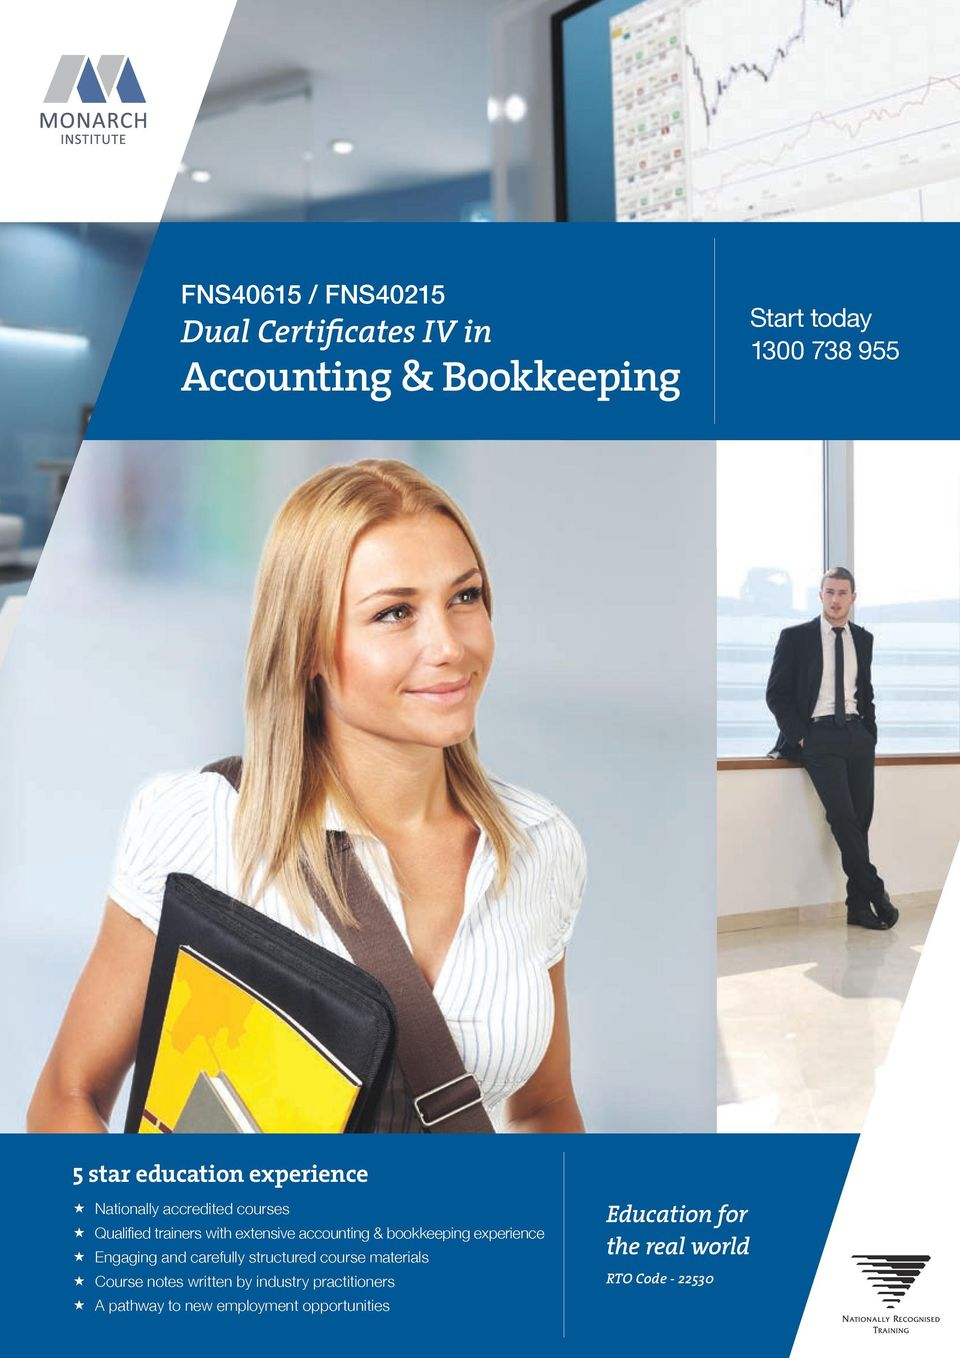 bookkeeping experience Engaging and carefully structured course materials Course notes written by